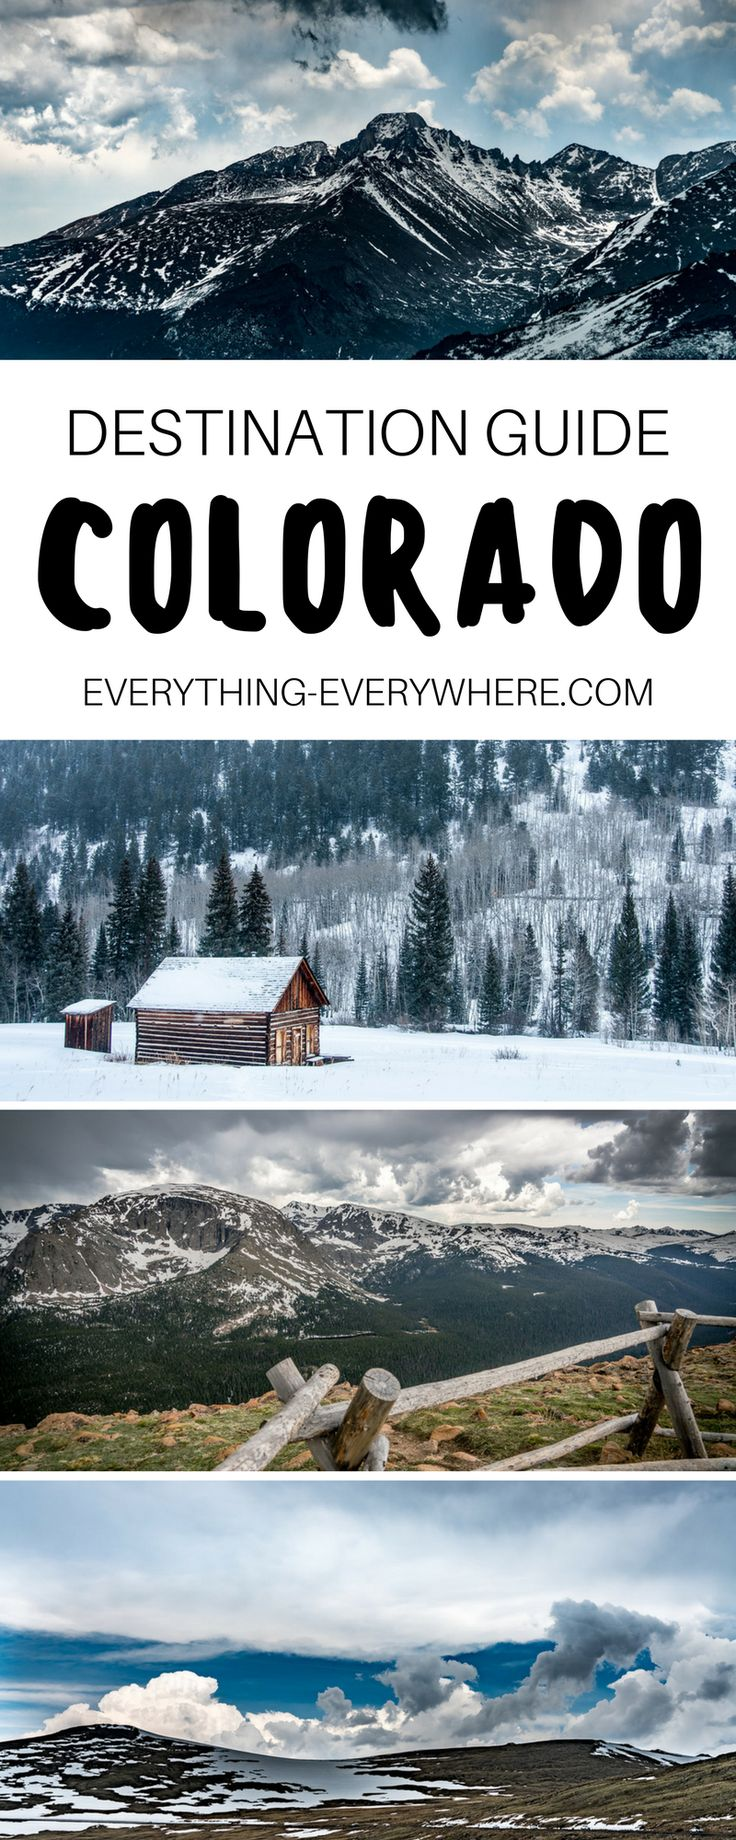 The ultimate guide to visiting Colorado, a state known for its alpine destinations such as the Rocky Mountains. Tips for visiting during winter or summer + practical information for your trip. Travel in the USA. | Everything Everywhere Destination Guide